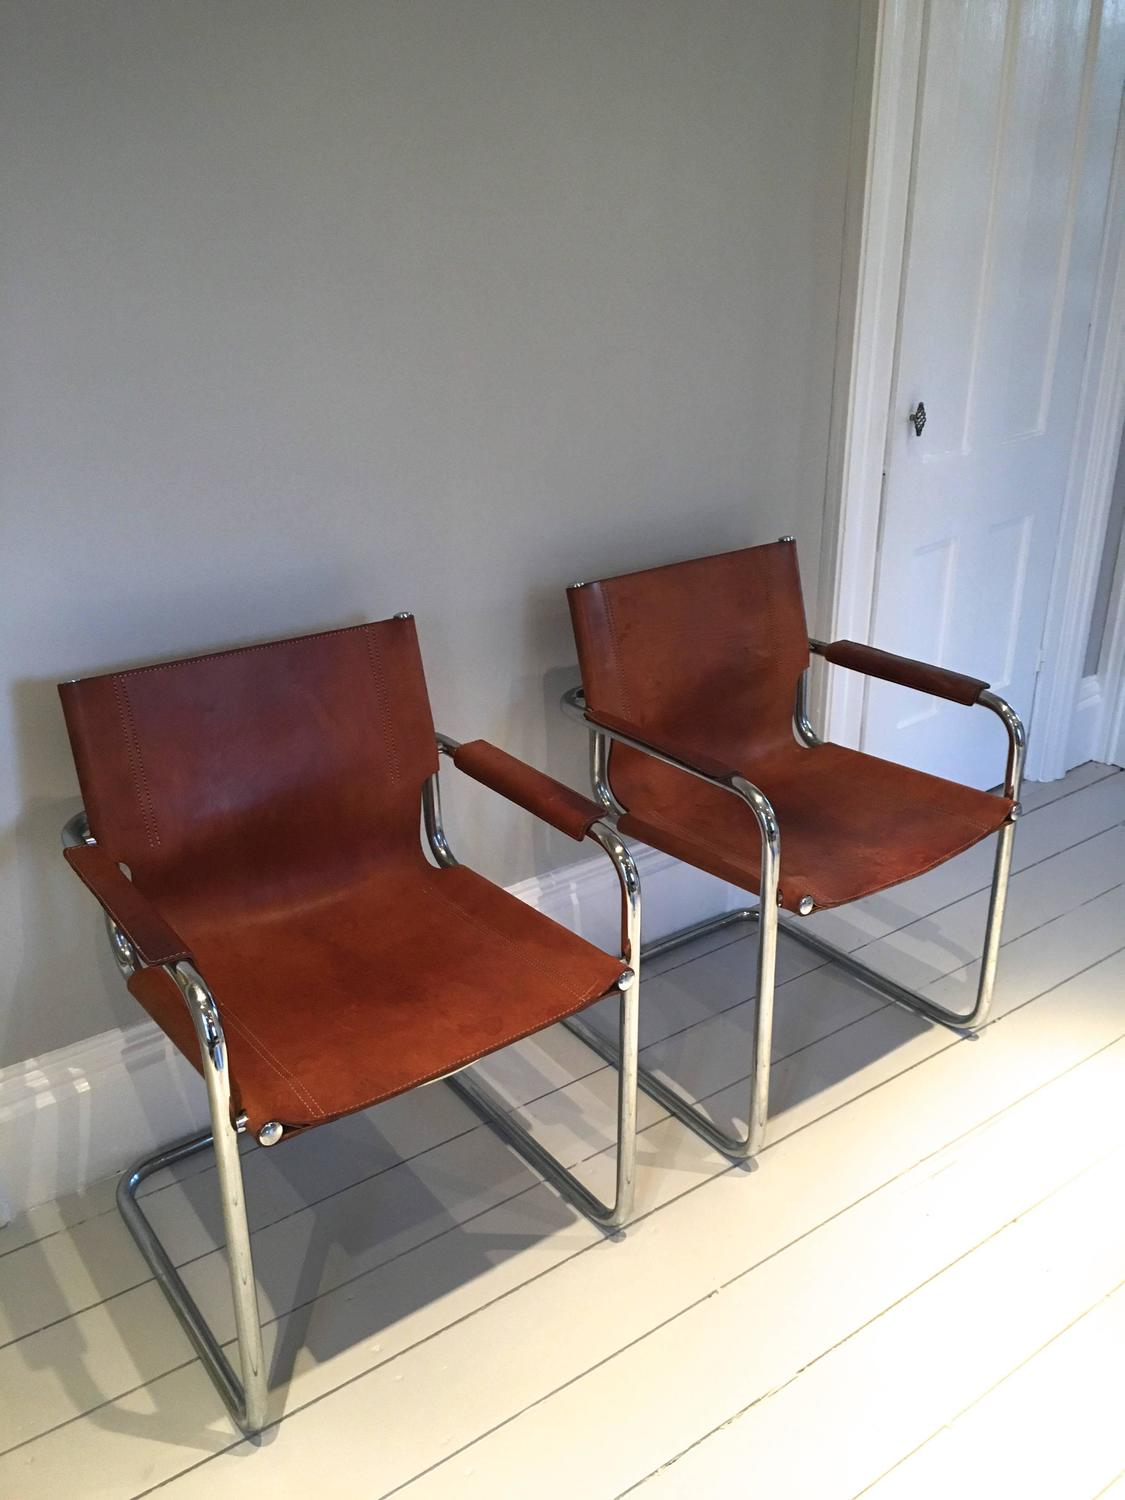 mart stam chair gaming with footrest pair of style cantilevered leather and chrome